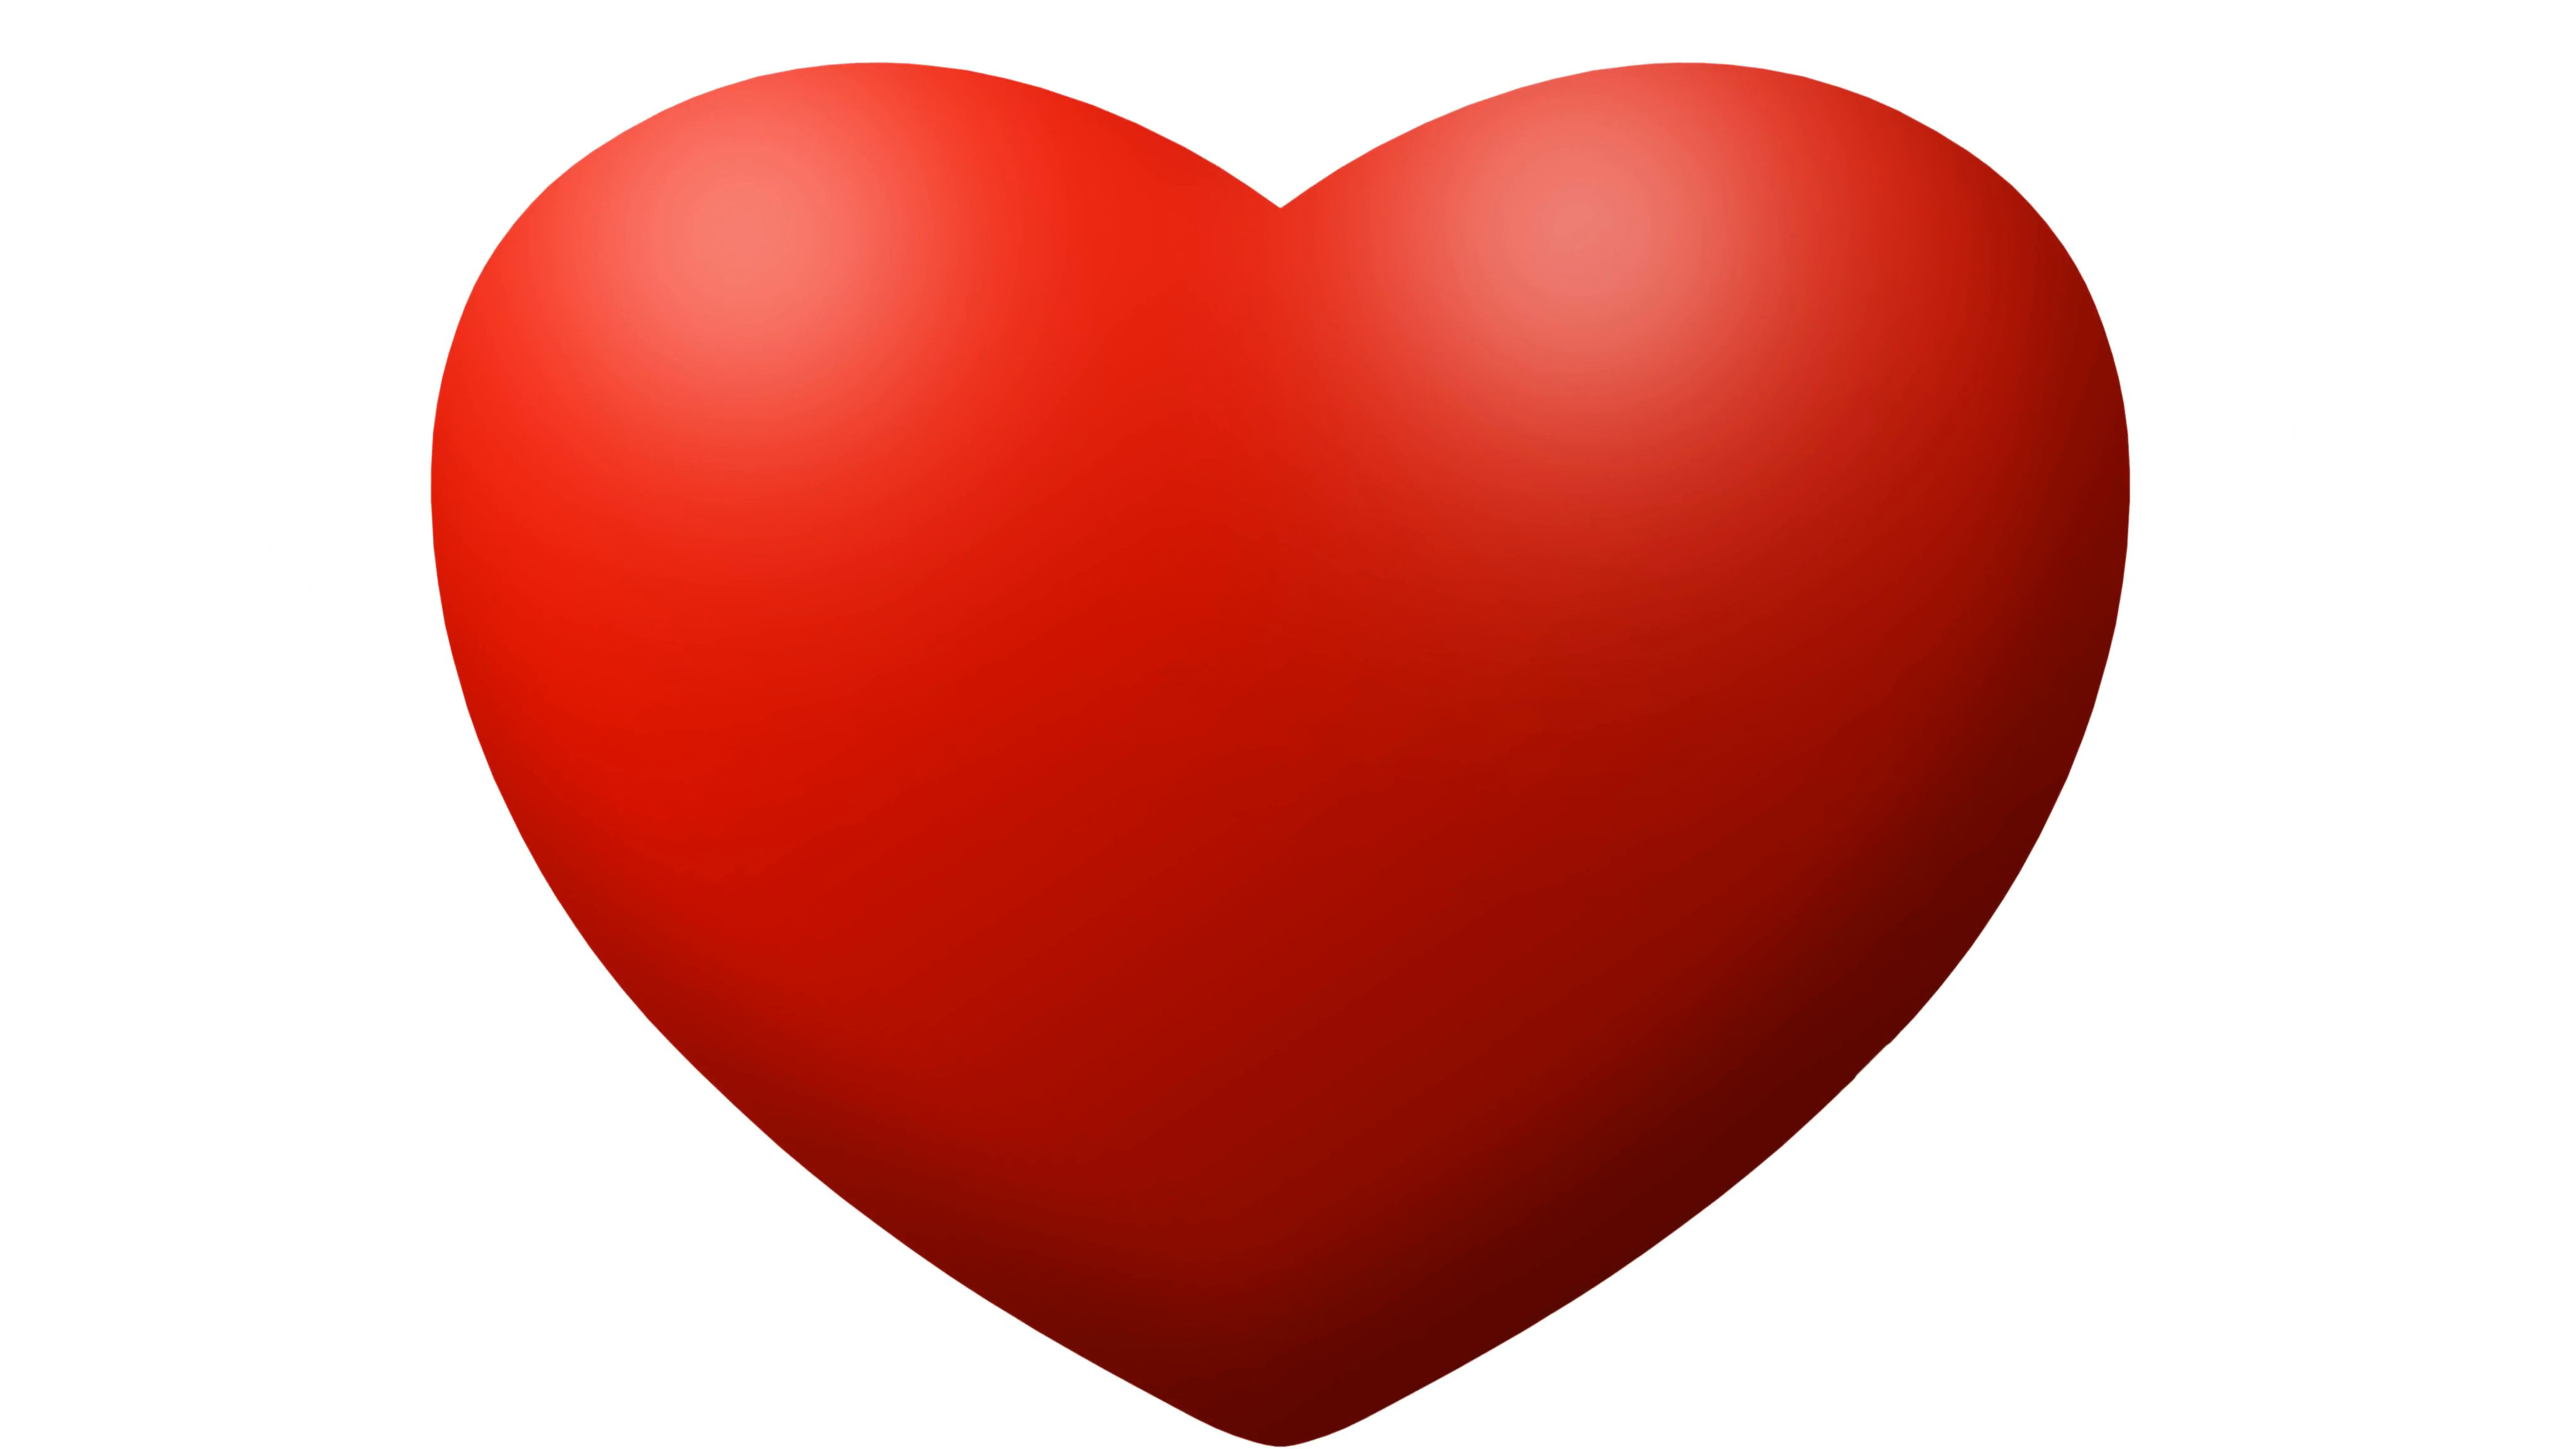 Red Heart with Love Luxury Red Love Heart Background Wallpapersafari Of Awesome 41 Ideas Red Heart with Love